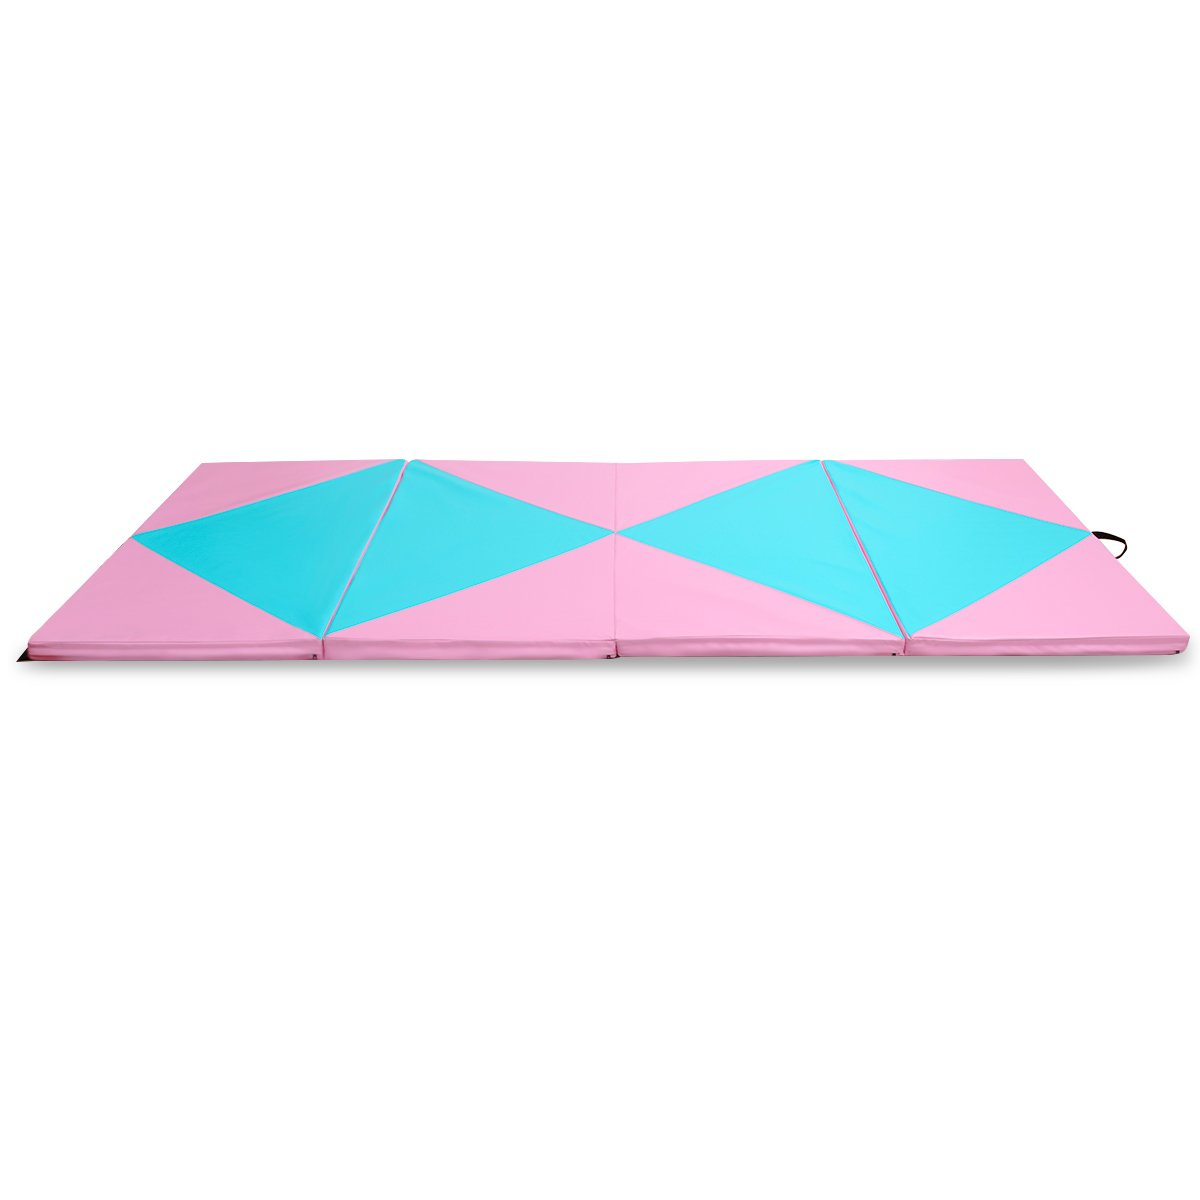 Giantex 4'x10'x2 Gymnastics Mat Thick Folding Panel for Gym Fitness with Hook & Loop Fasteners (Pink/Blue-Double Diamond)